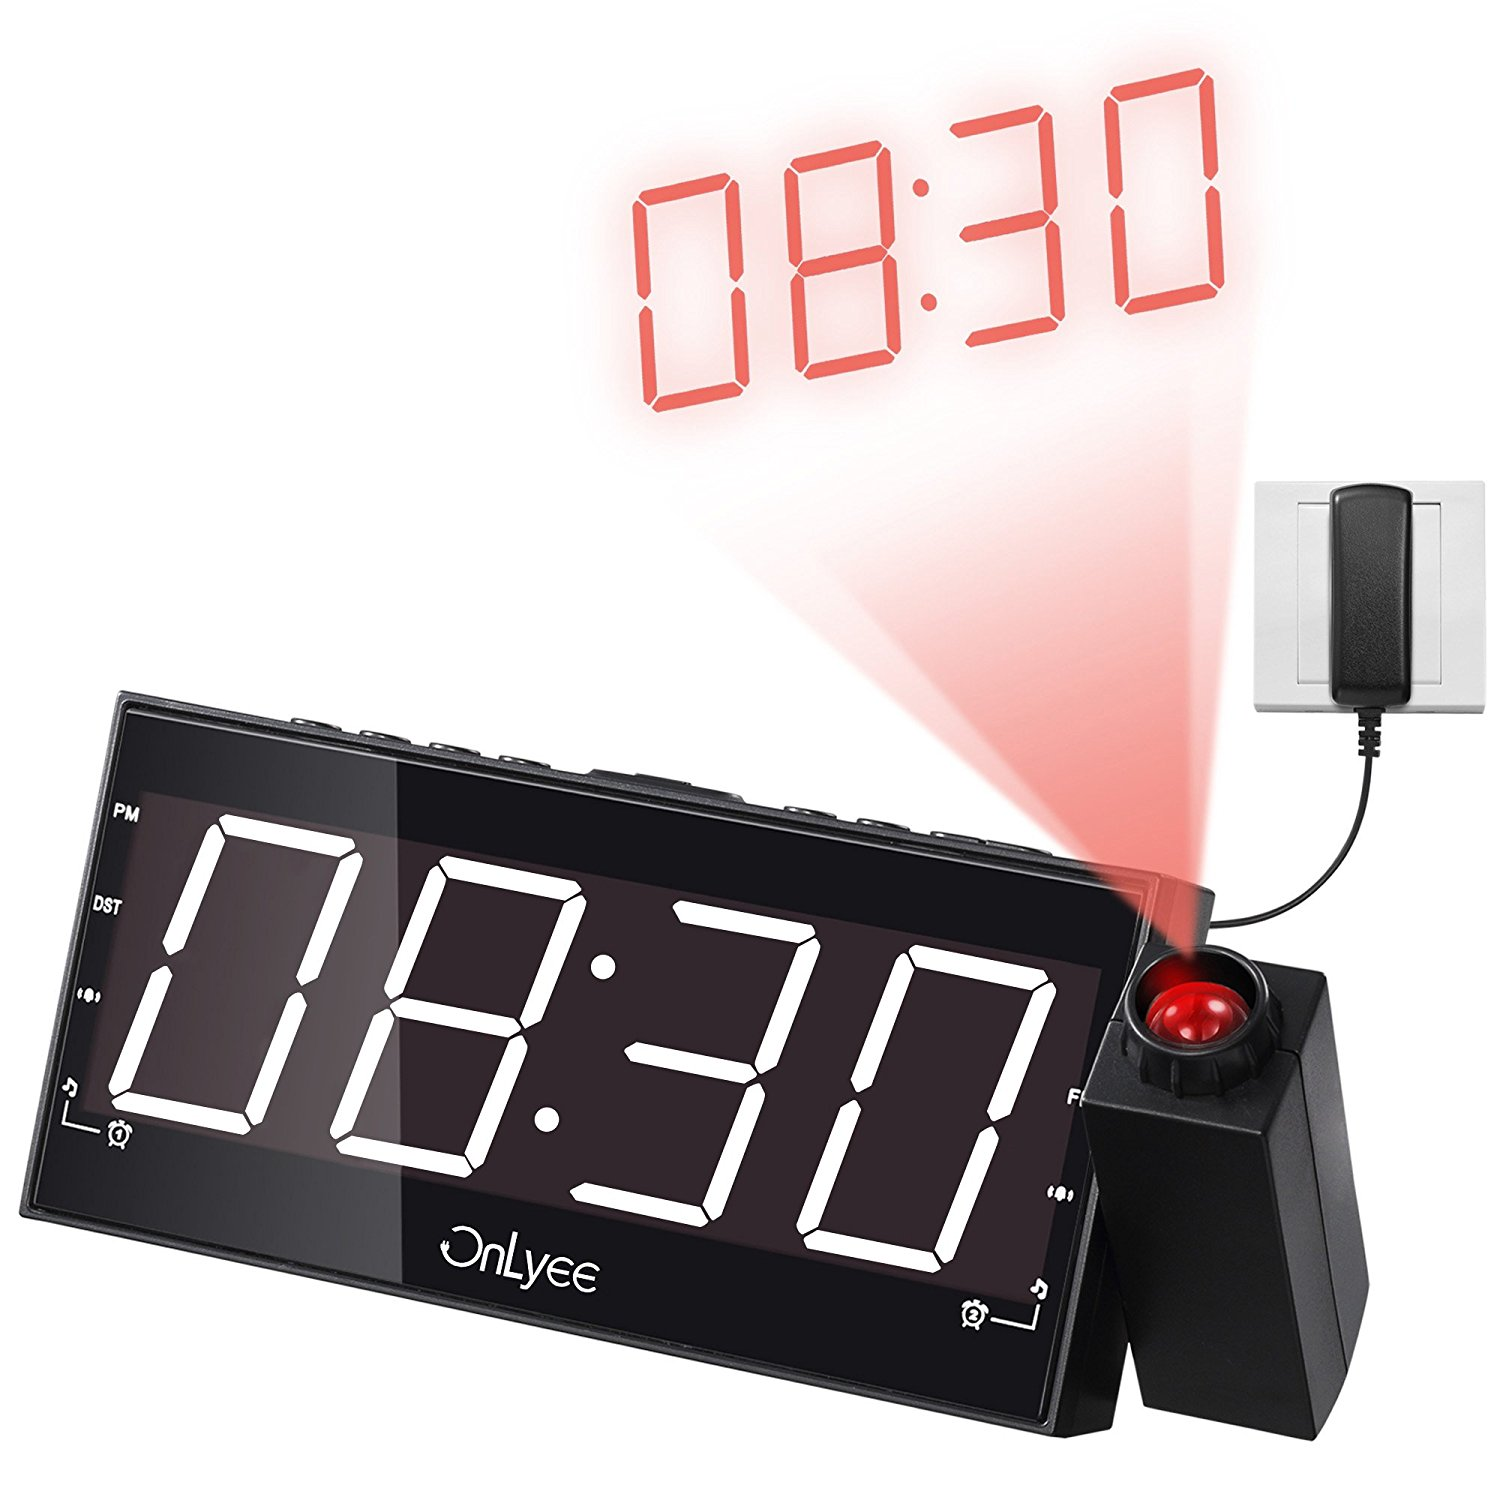 OnLyee Digital LED Dimmable Projection Alarm Clock Radio with AM/FM,USB Charging Port (WHITE)